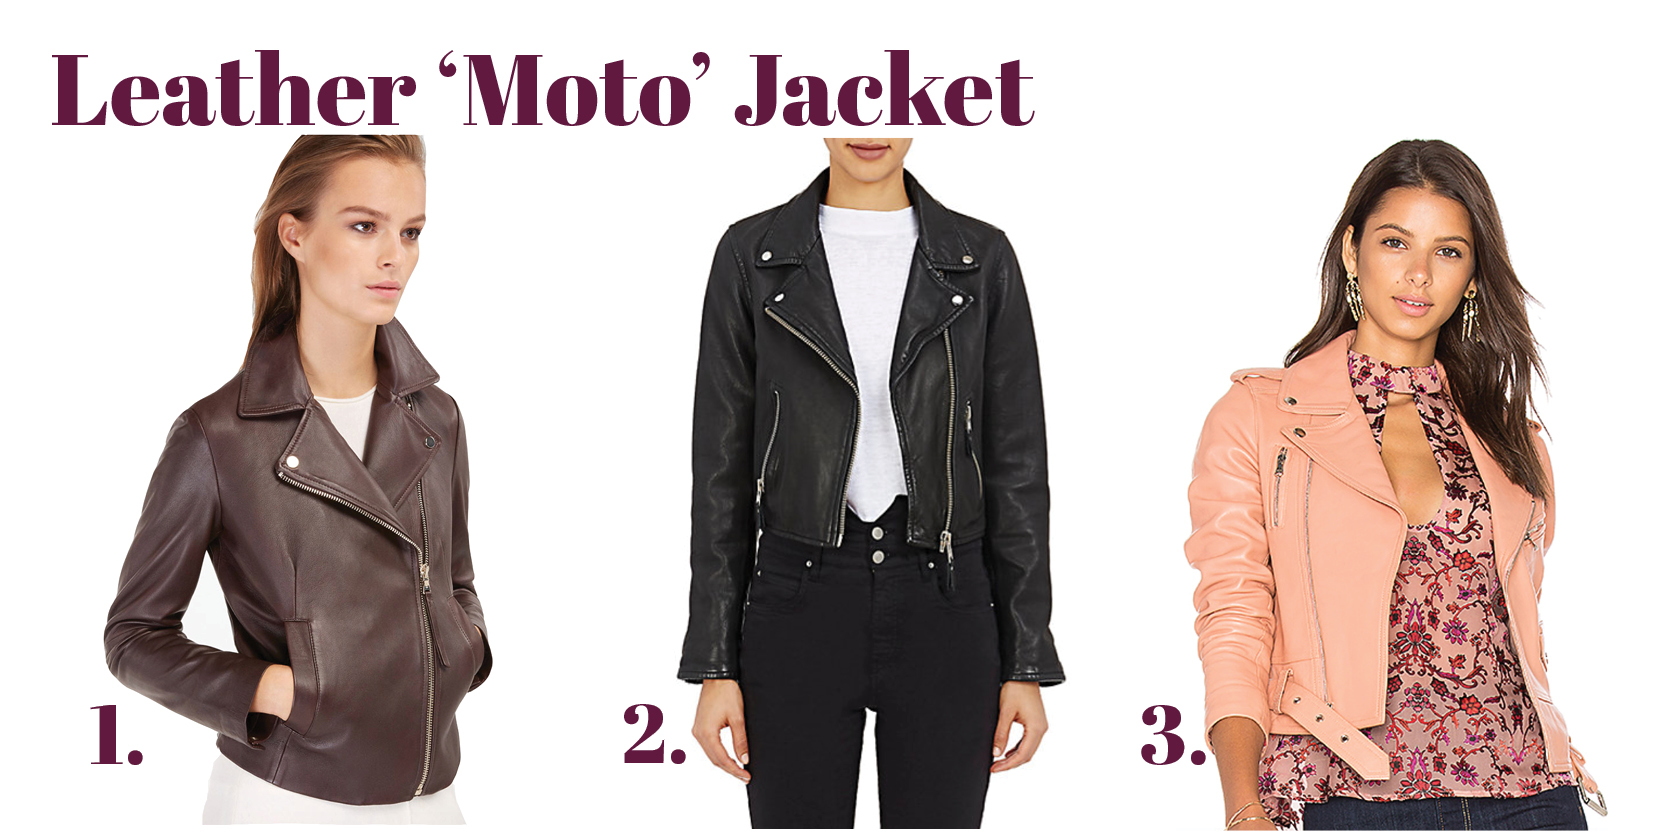 leather-moto-jacket-6.jpg